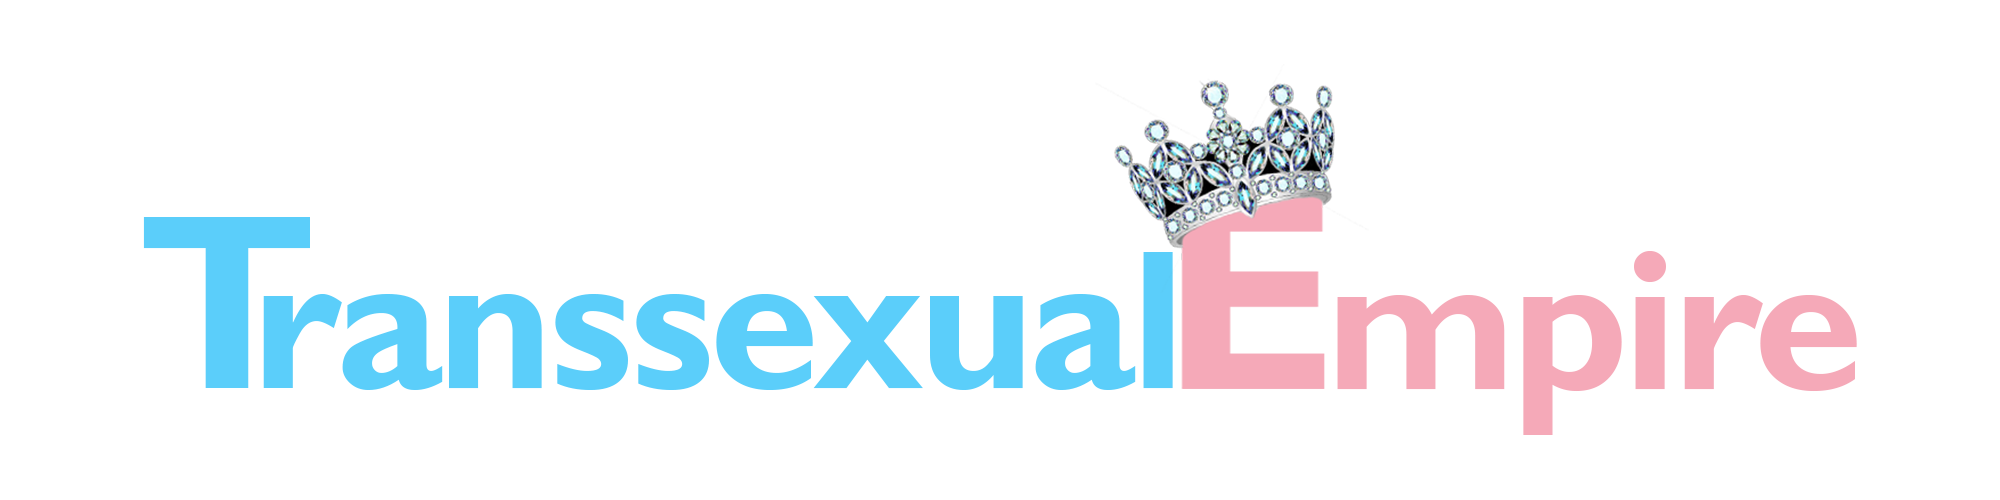 Transsexual Empire  DVD, sex toy and Streaming Porn Video on Demand